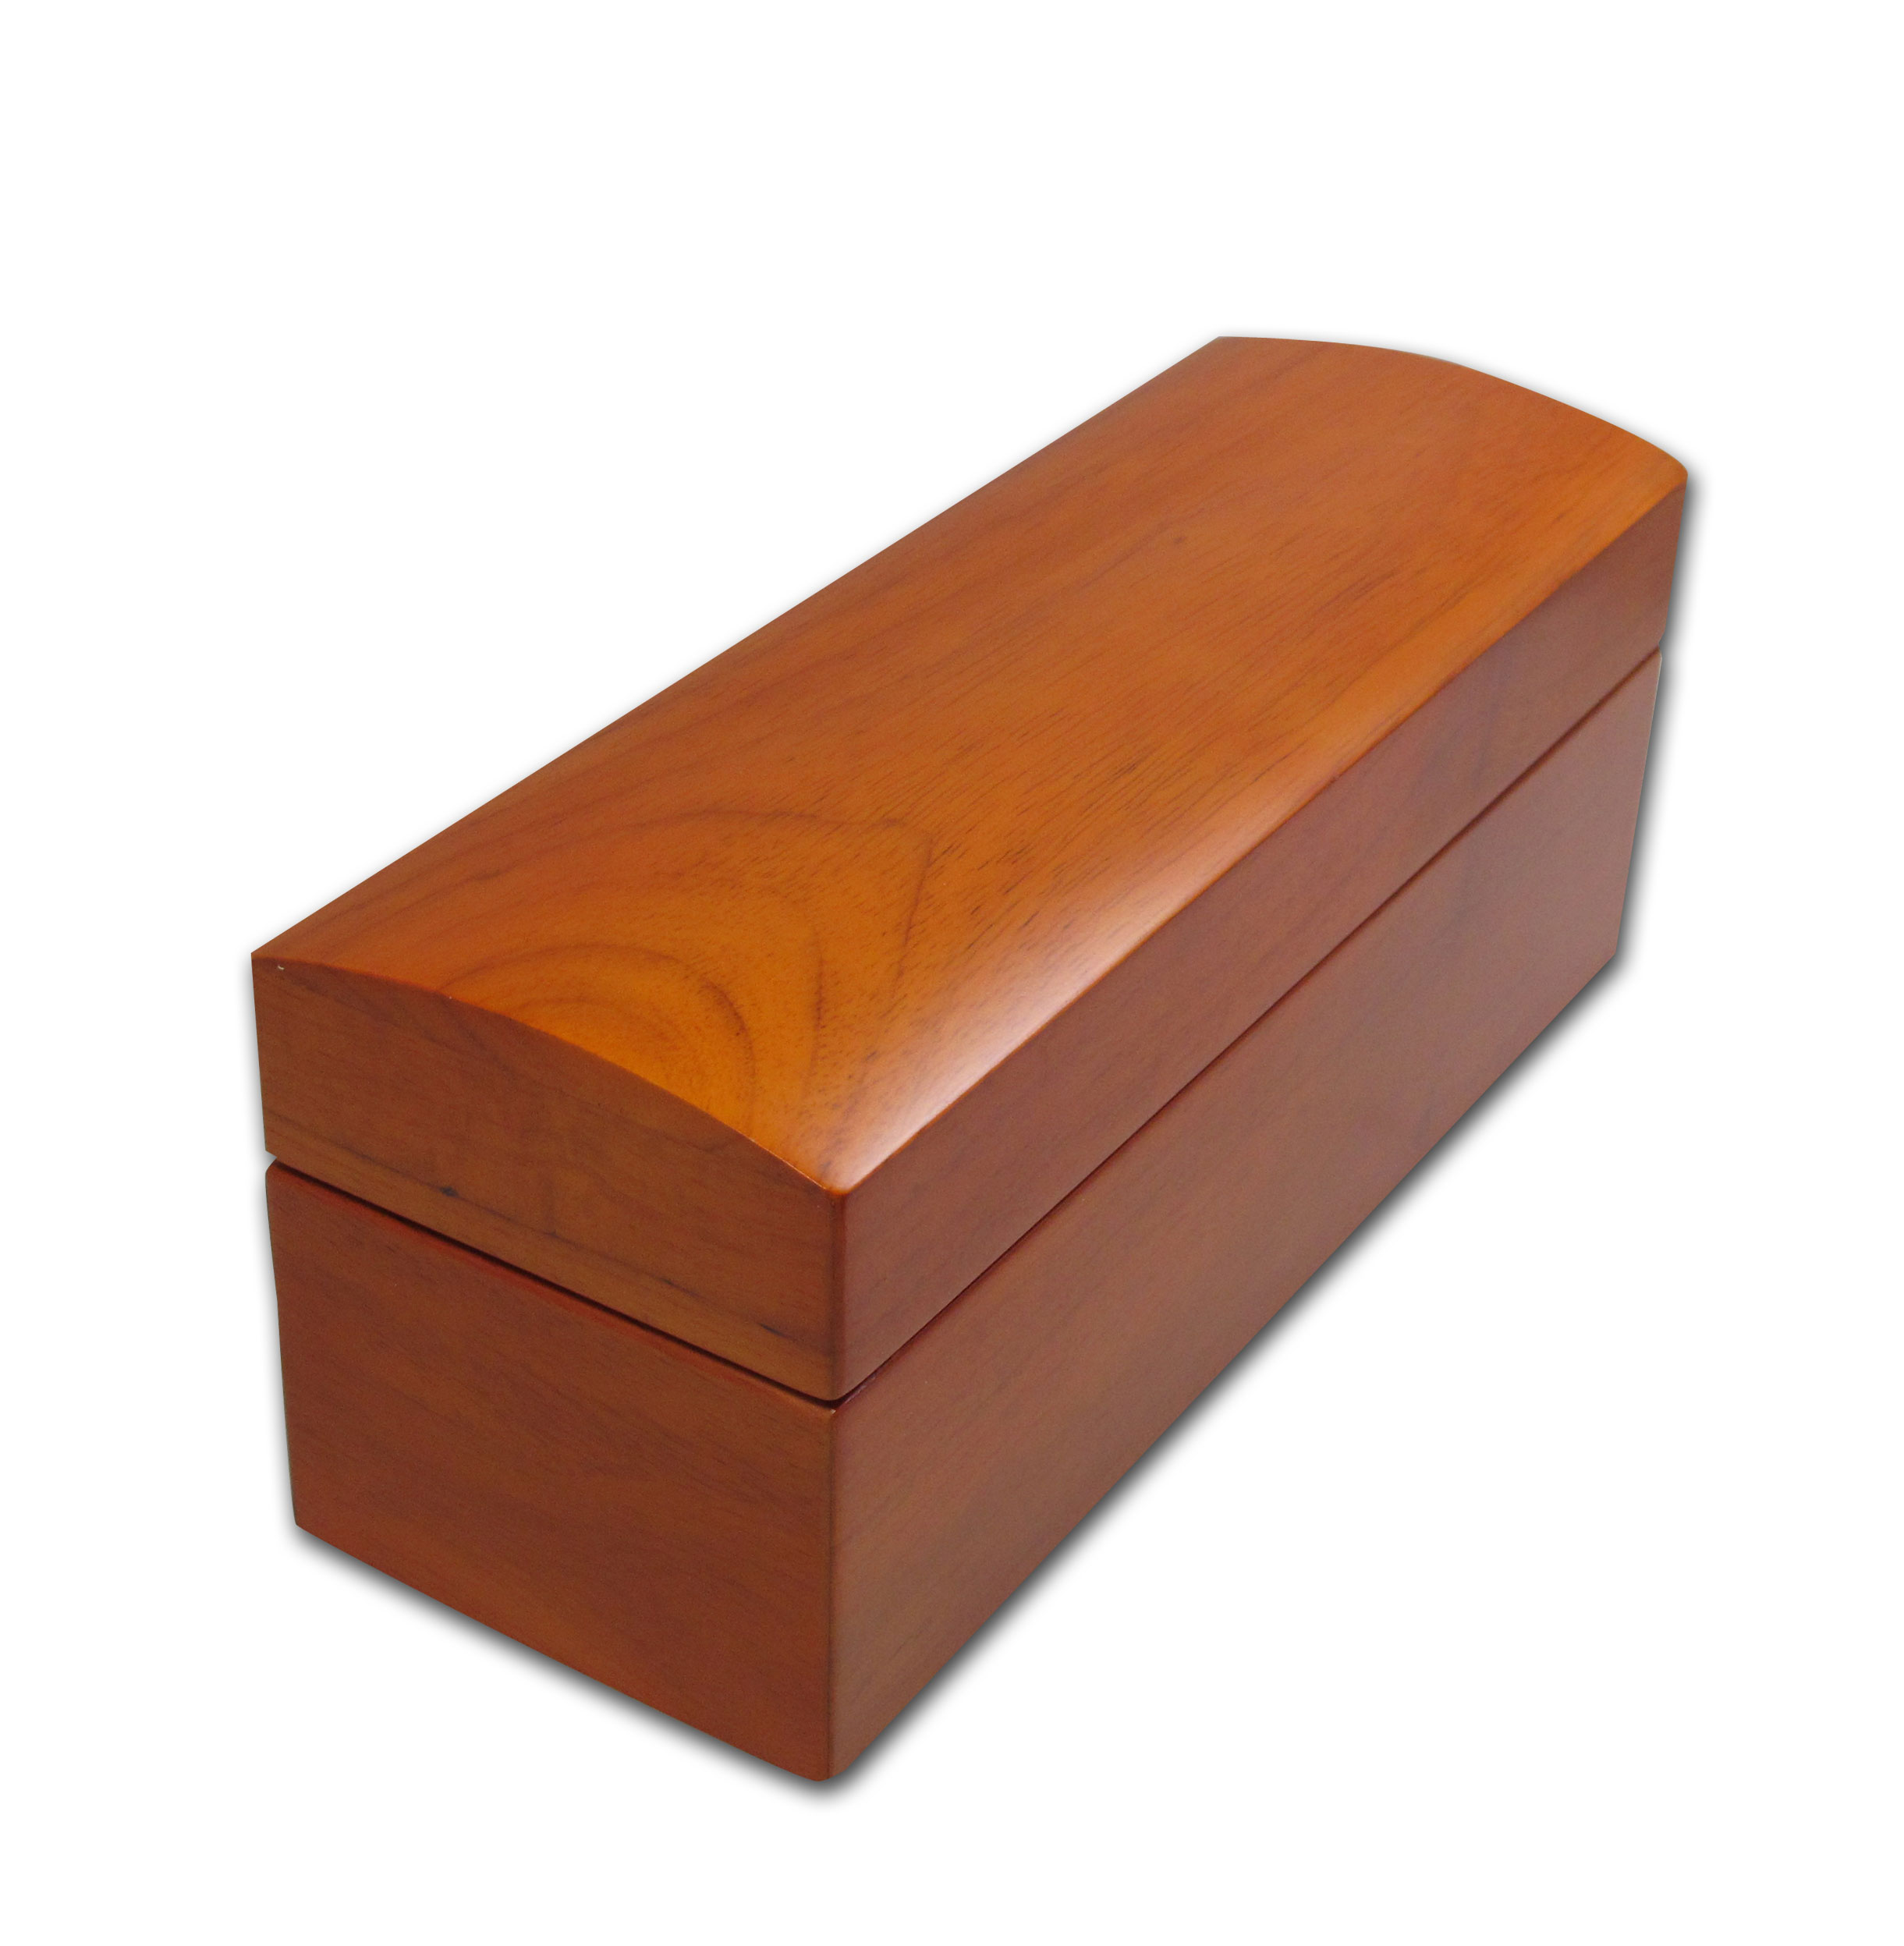 Wooden Slab Storage Box - Twenty Slabs